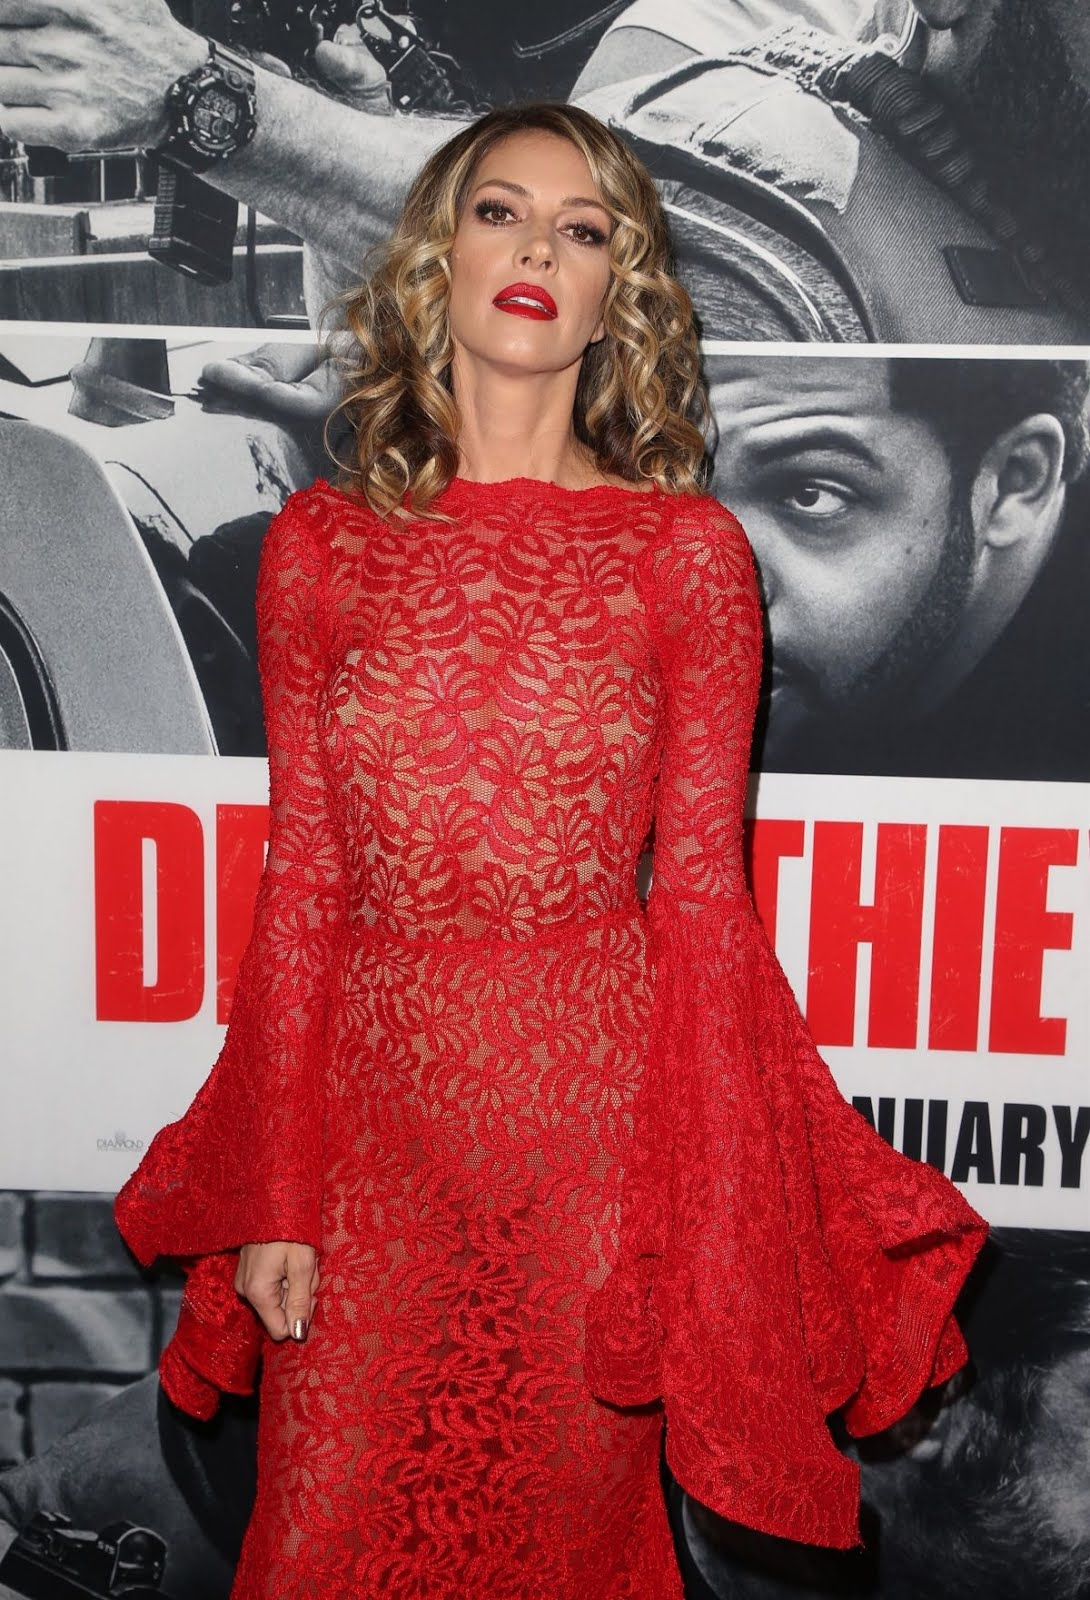 Dawn Olivieri in Hot Red Dress At Den Of Thieves Premiere In Los Angeles